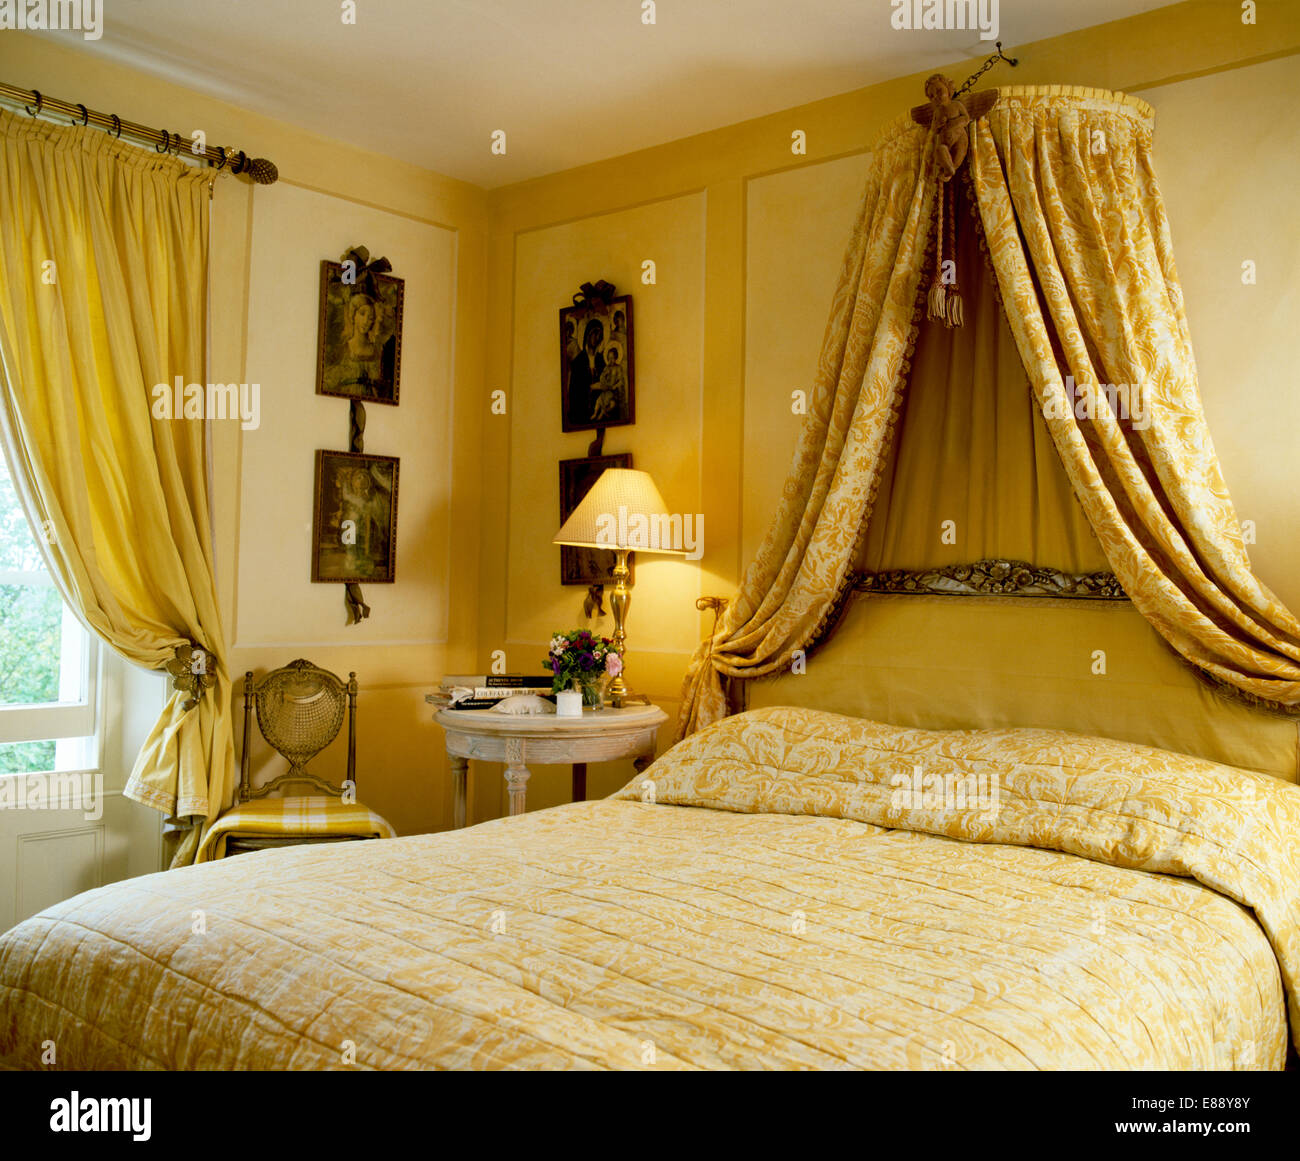 inches cigars incredible bedroom com curtains sheer curtain bright pictures and window drapes inspirations amsterdam yellow